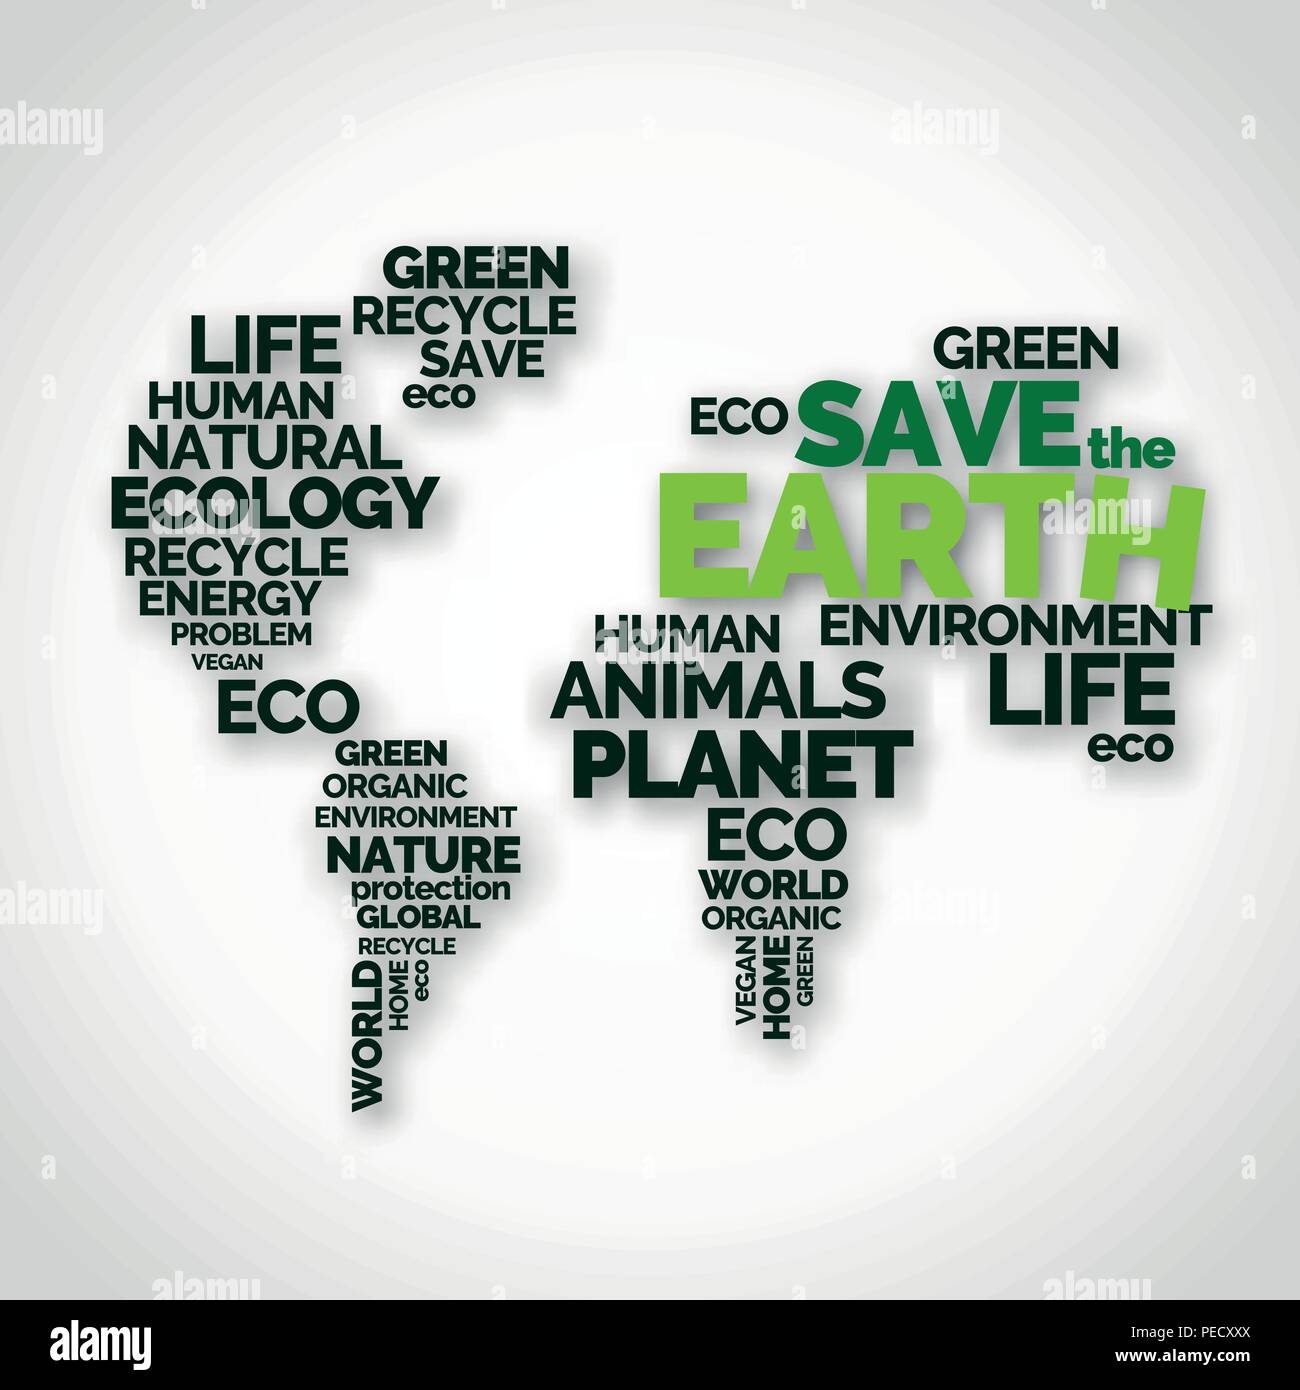 Save Nature Poster High Resolution Stock Photography And Images Alamy